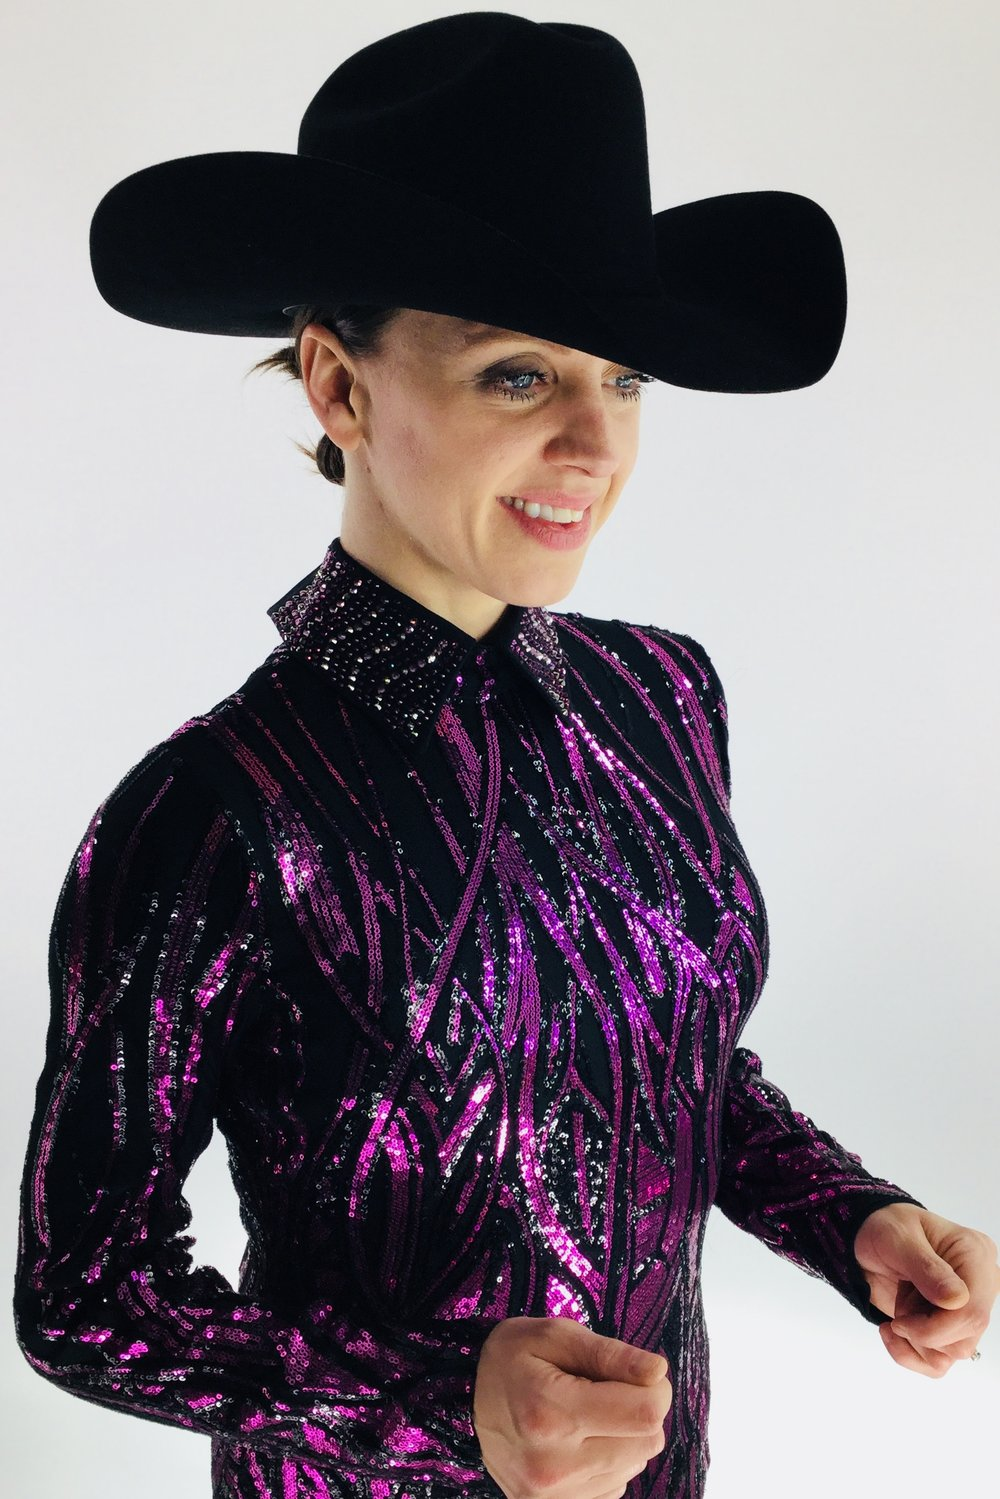 sparkle-ridge-black-and-purple-sequin-western-show-shirts-anita5.jpg